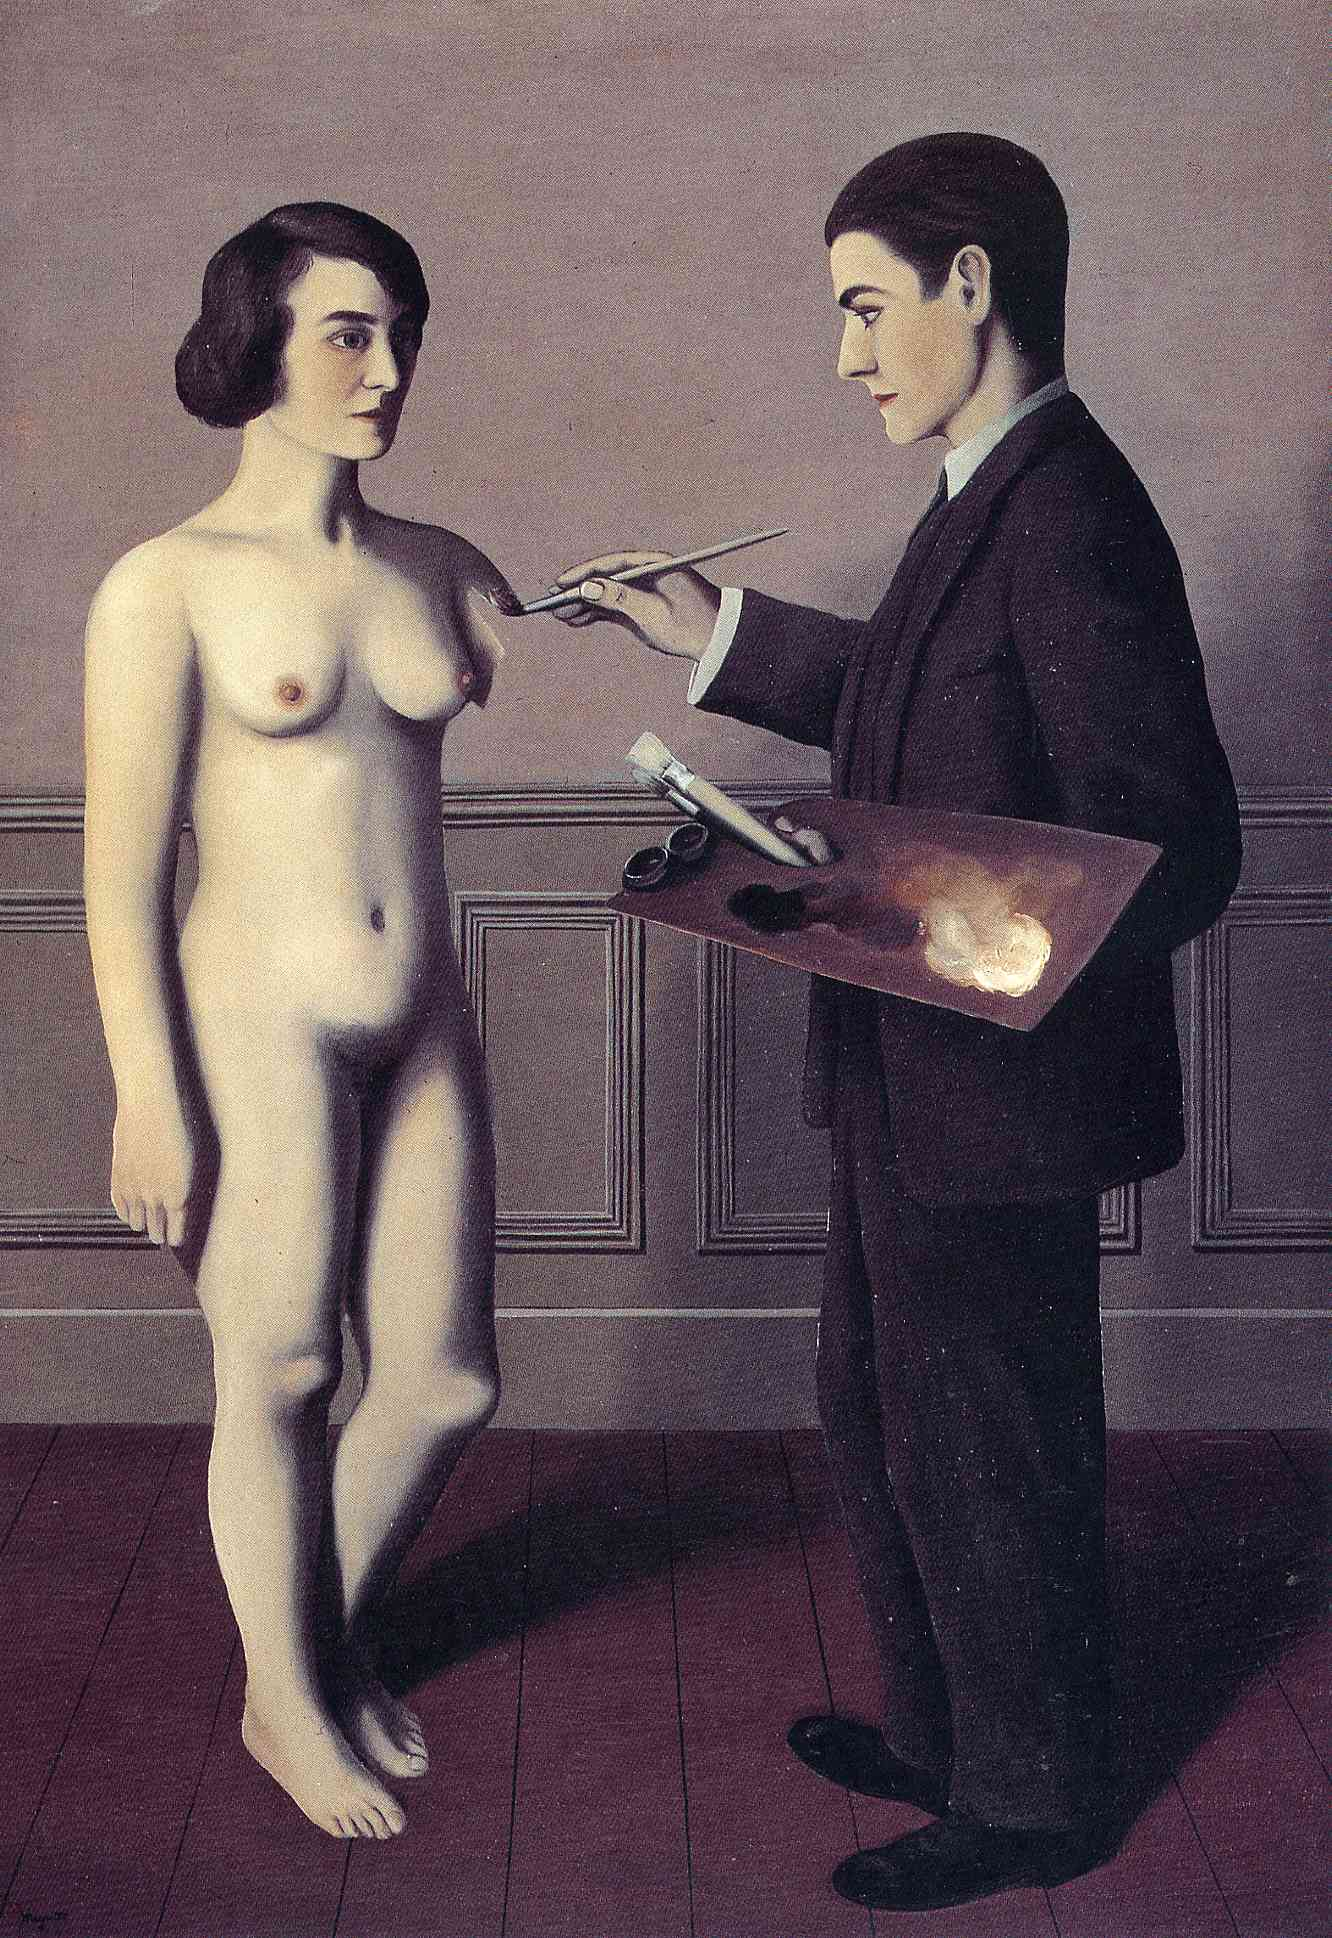 magritte-attempting-impossible.jpg